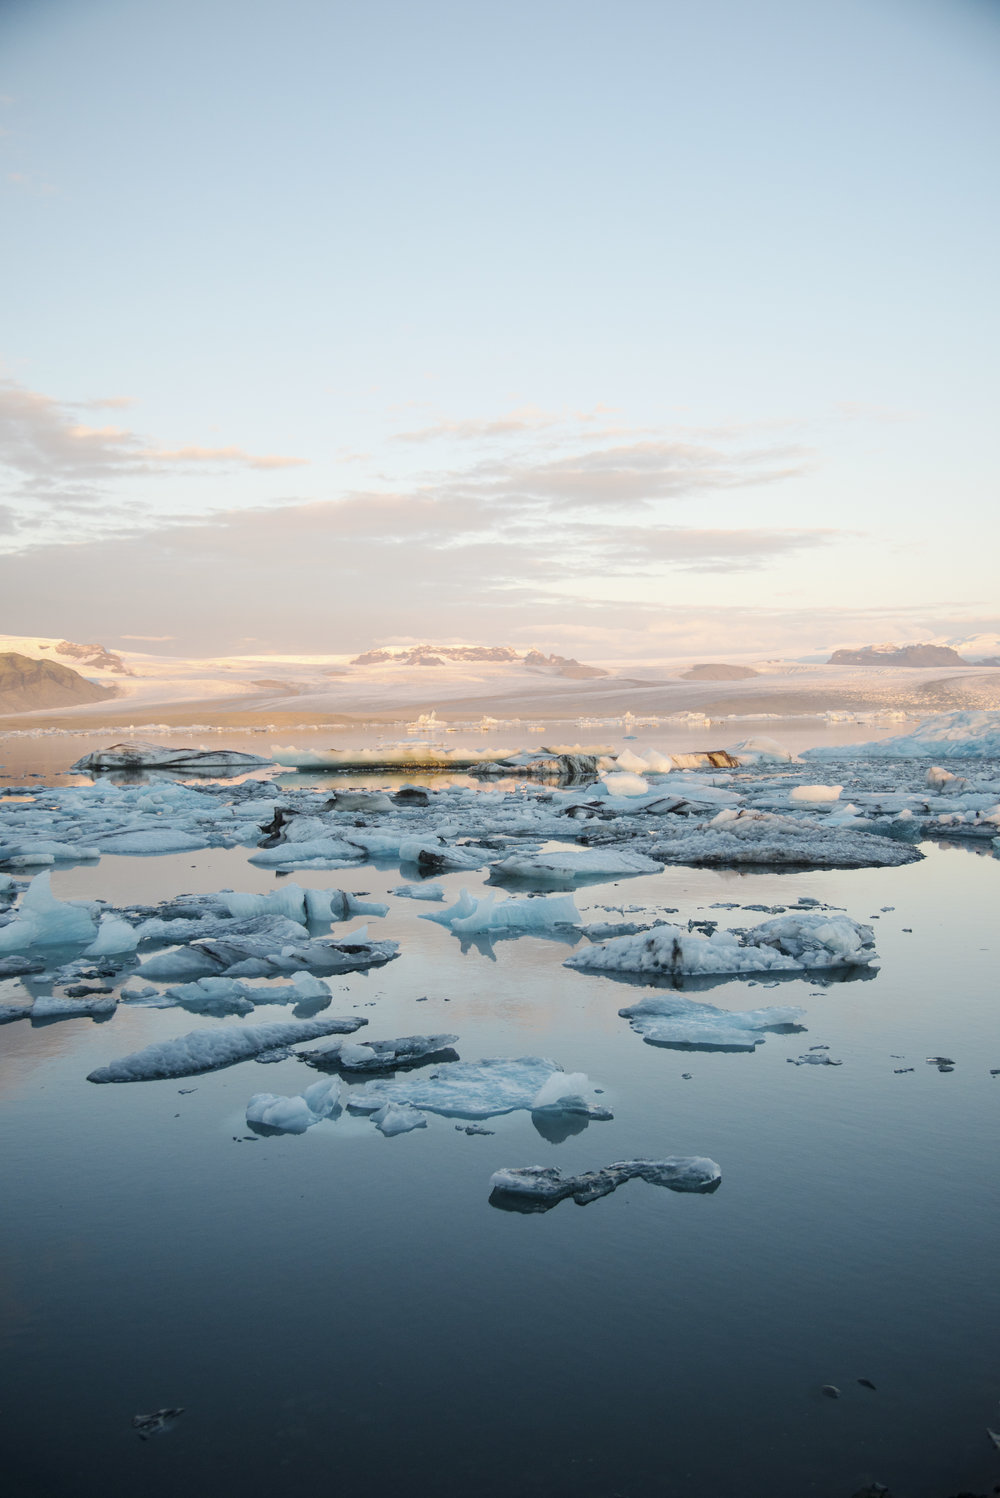 Sunrise Over Jukosarlon Glacier Lagoon in Iceland.jpg